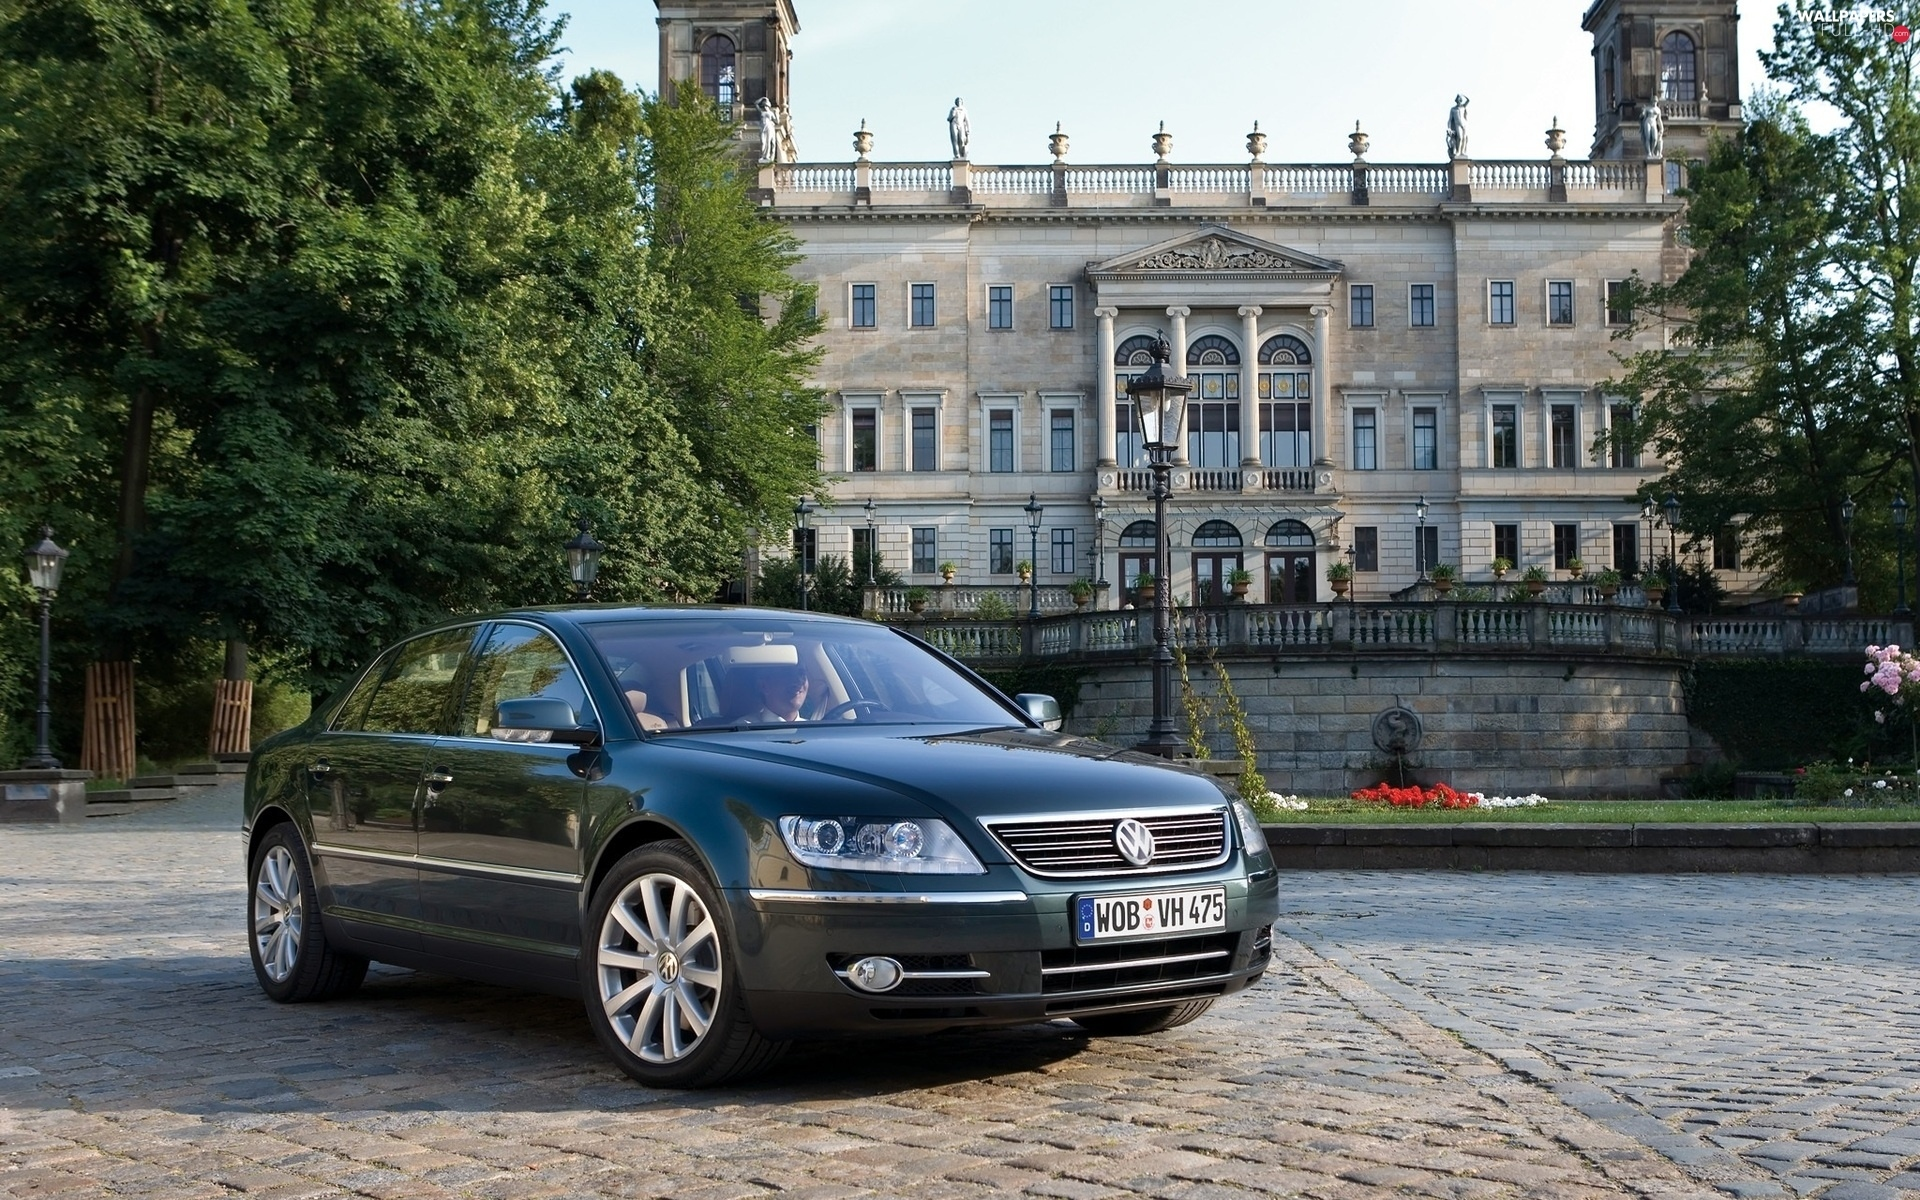 Volkswagen Phaeton, viewes, house, trees